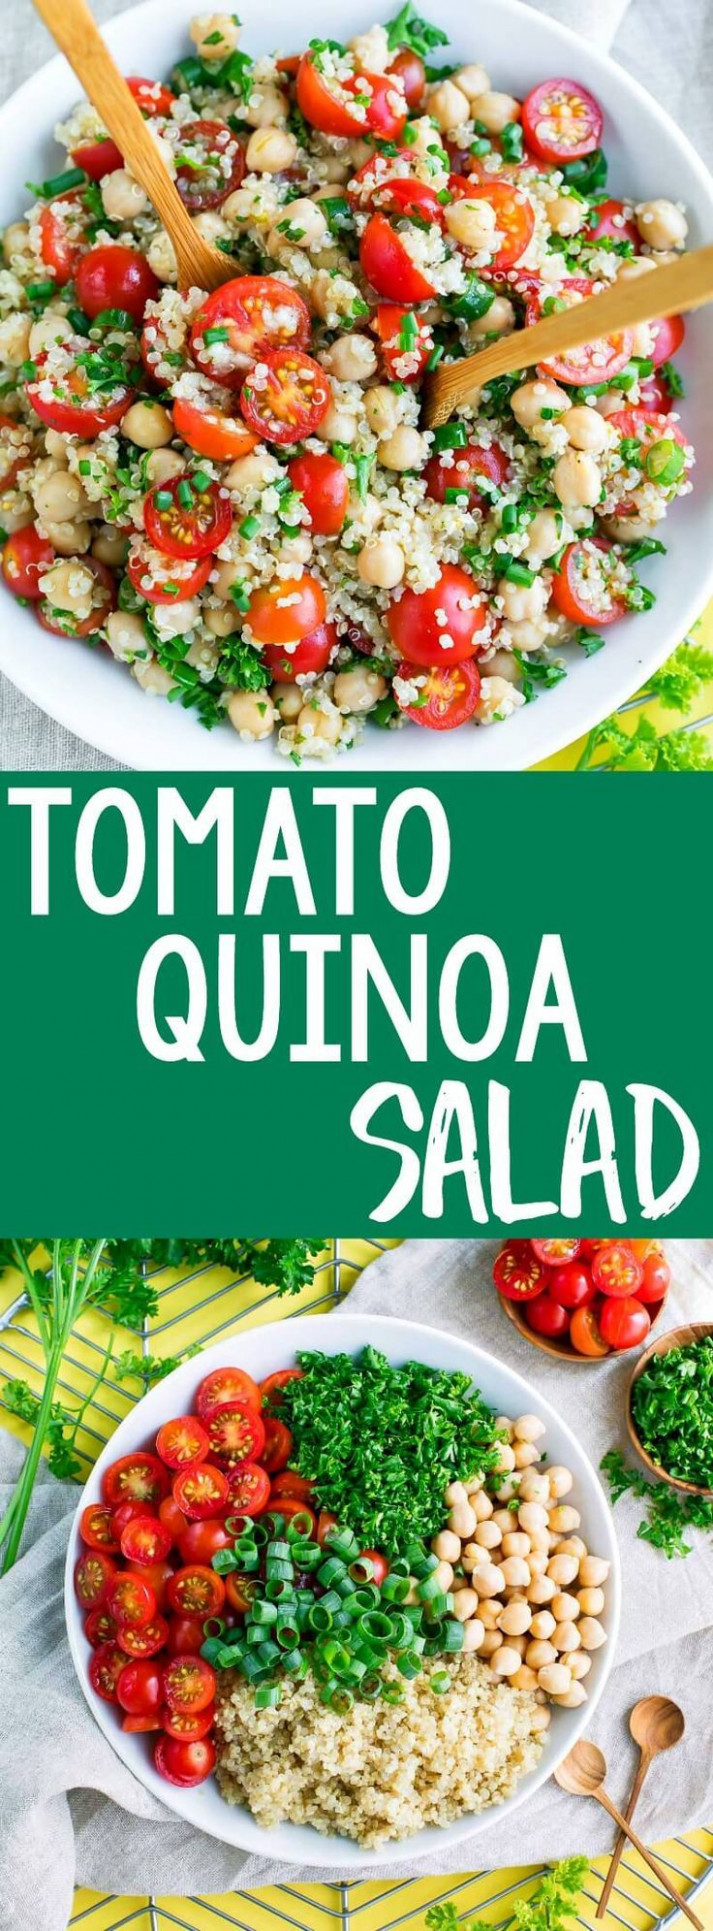 Tomato Quinoa Salad - healthy recipes quinoa salad